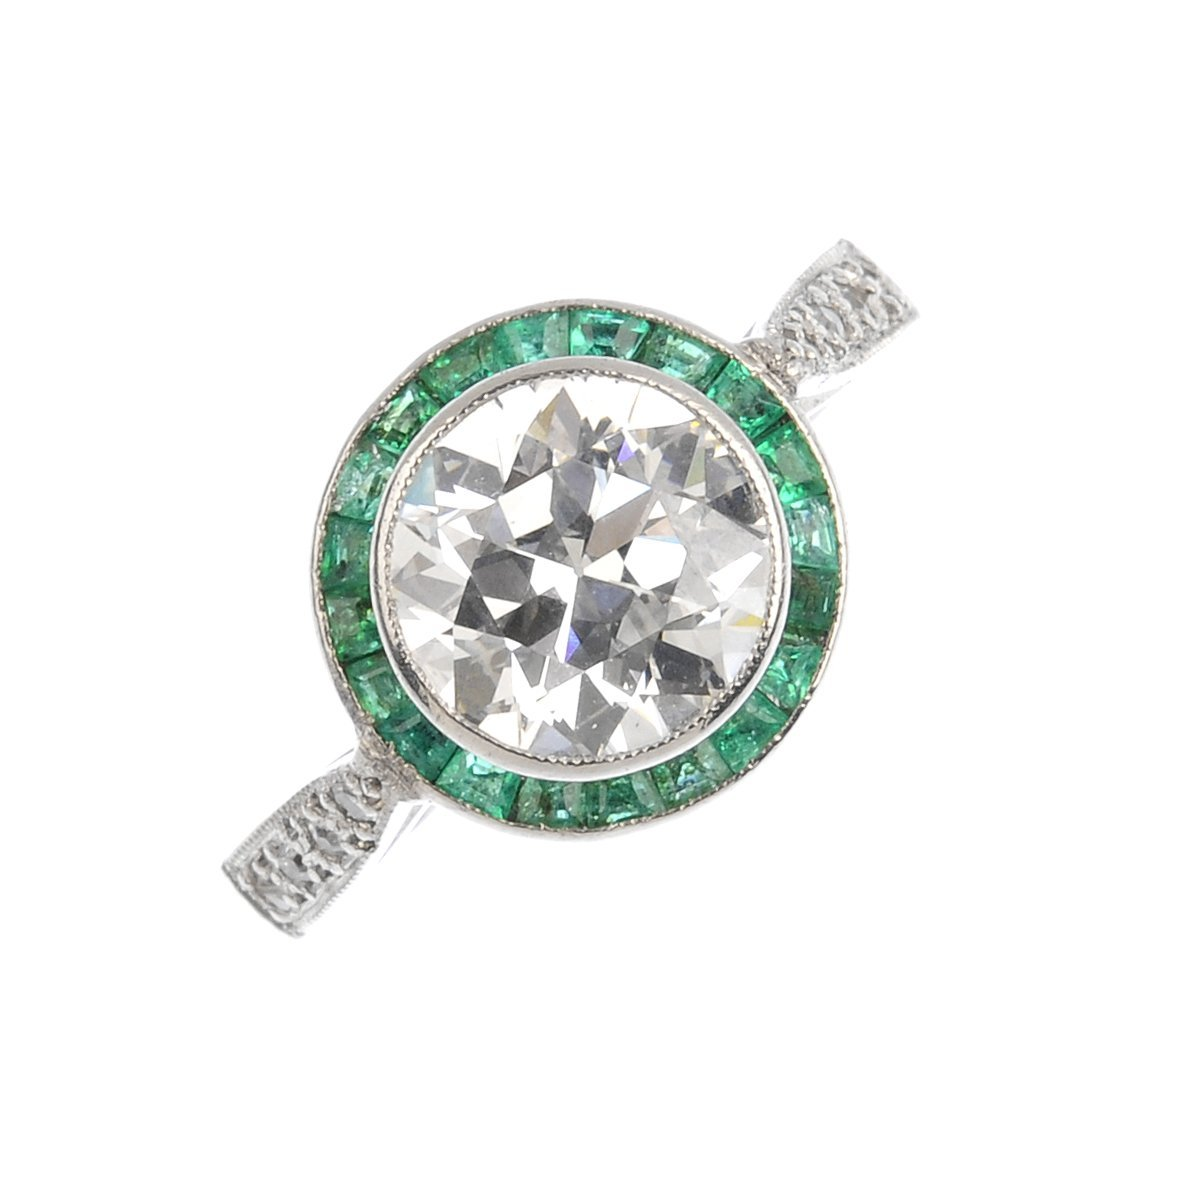 "<a href=""https://www.fellows.co.uk/2104-lot-255-A-platinum-diamond-and-emerald-cluster-ring?utm_source=Ageless%20Heirlooms&utm_medium=blog&utm_campaign=Ageless%20Heirlooms%20Vintage&utm_content=Blog%20and%20social"">LOT 255</a>"